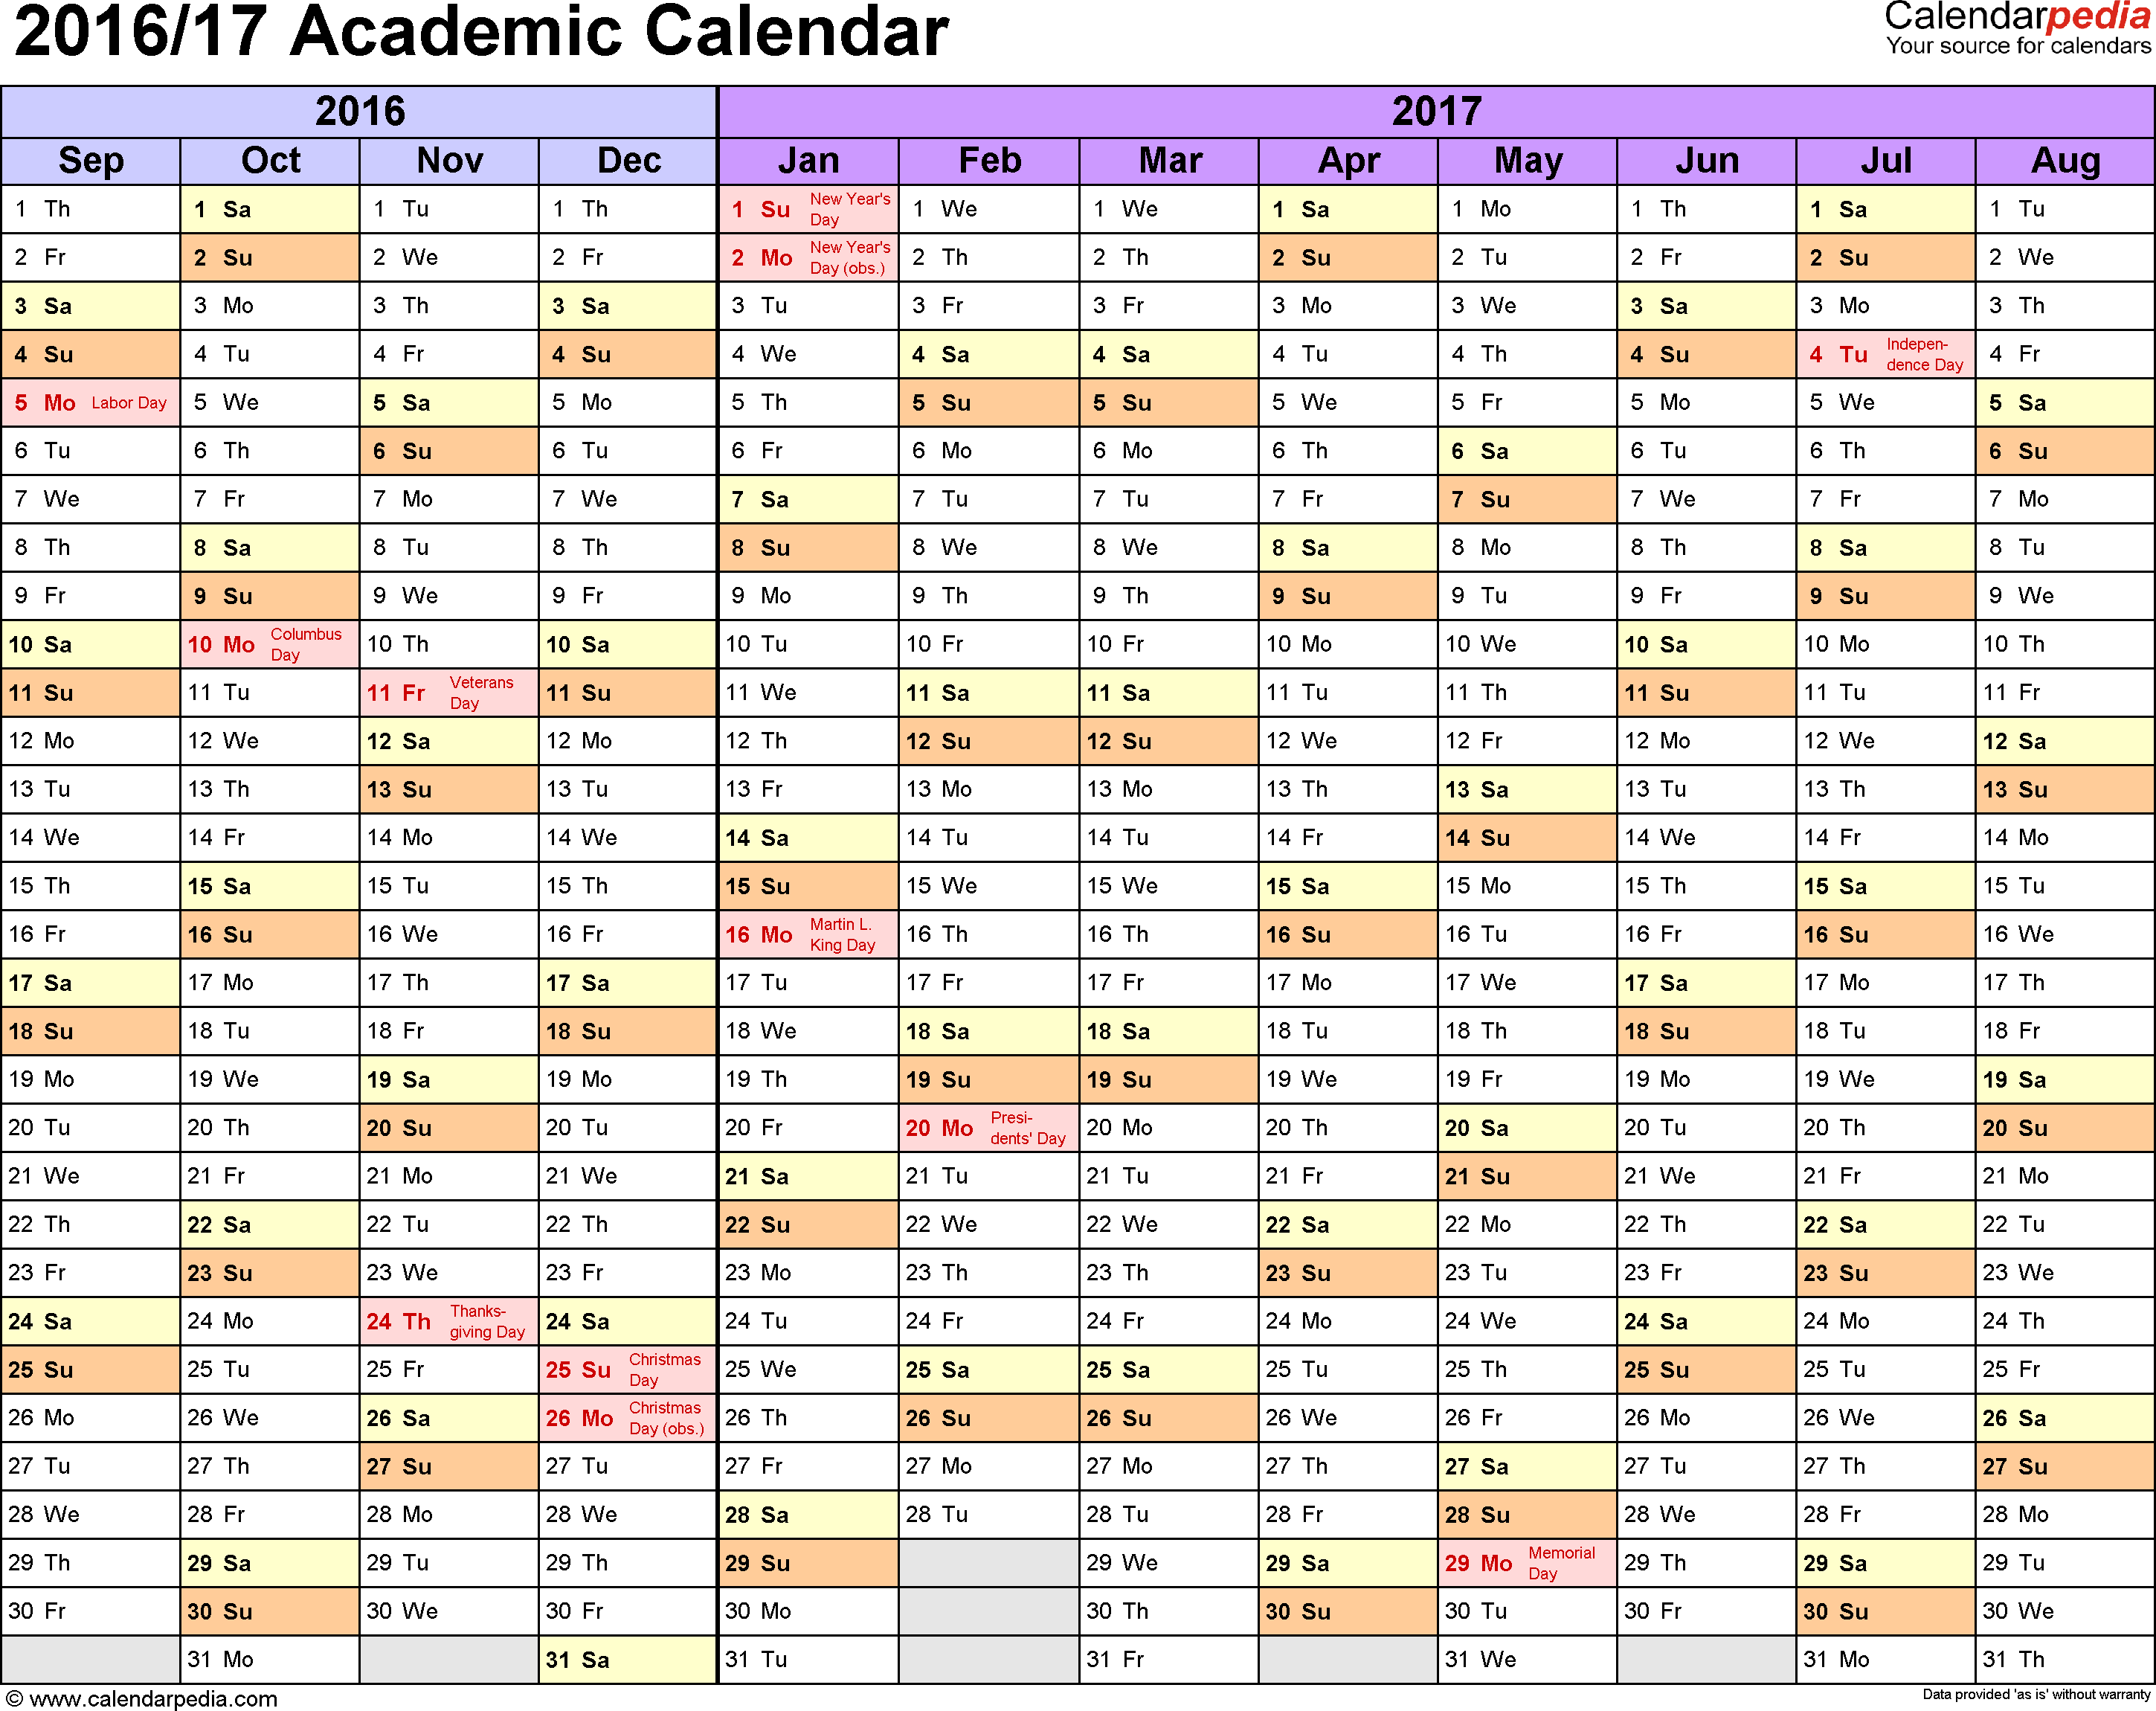 Template 1: Academic calendar 2016/17 for Excel, landscape orientation, months horizontally, 1 page